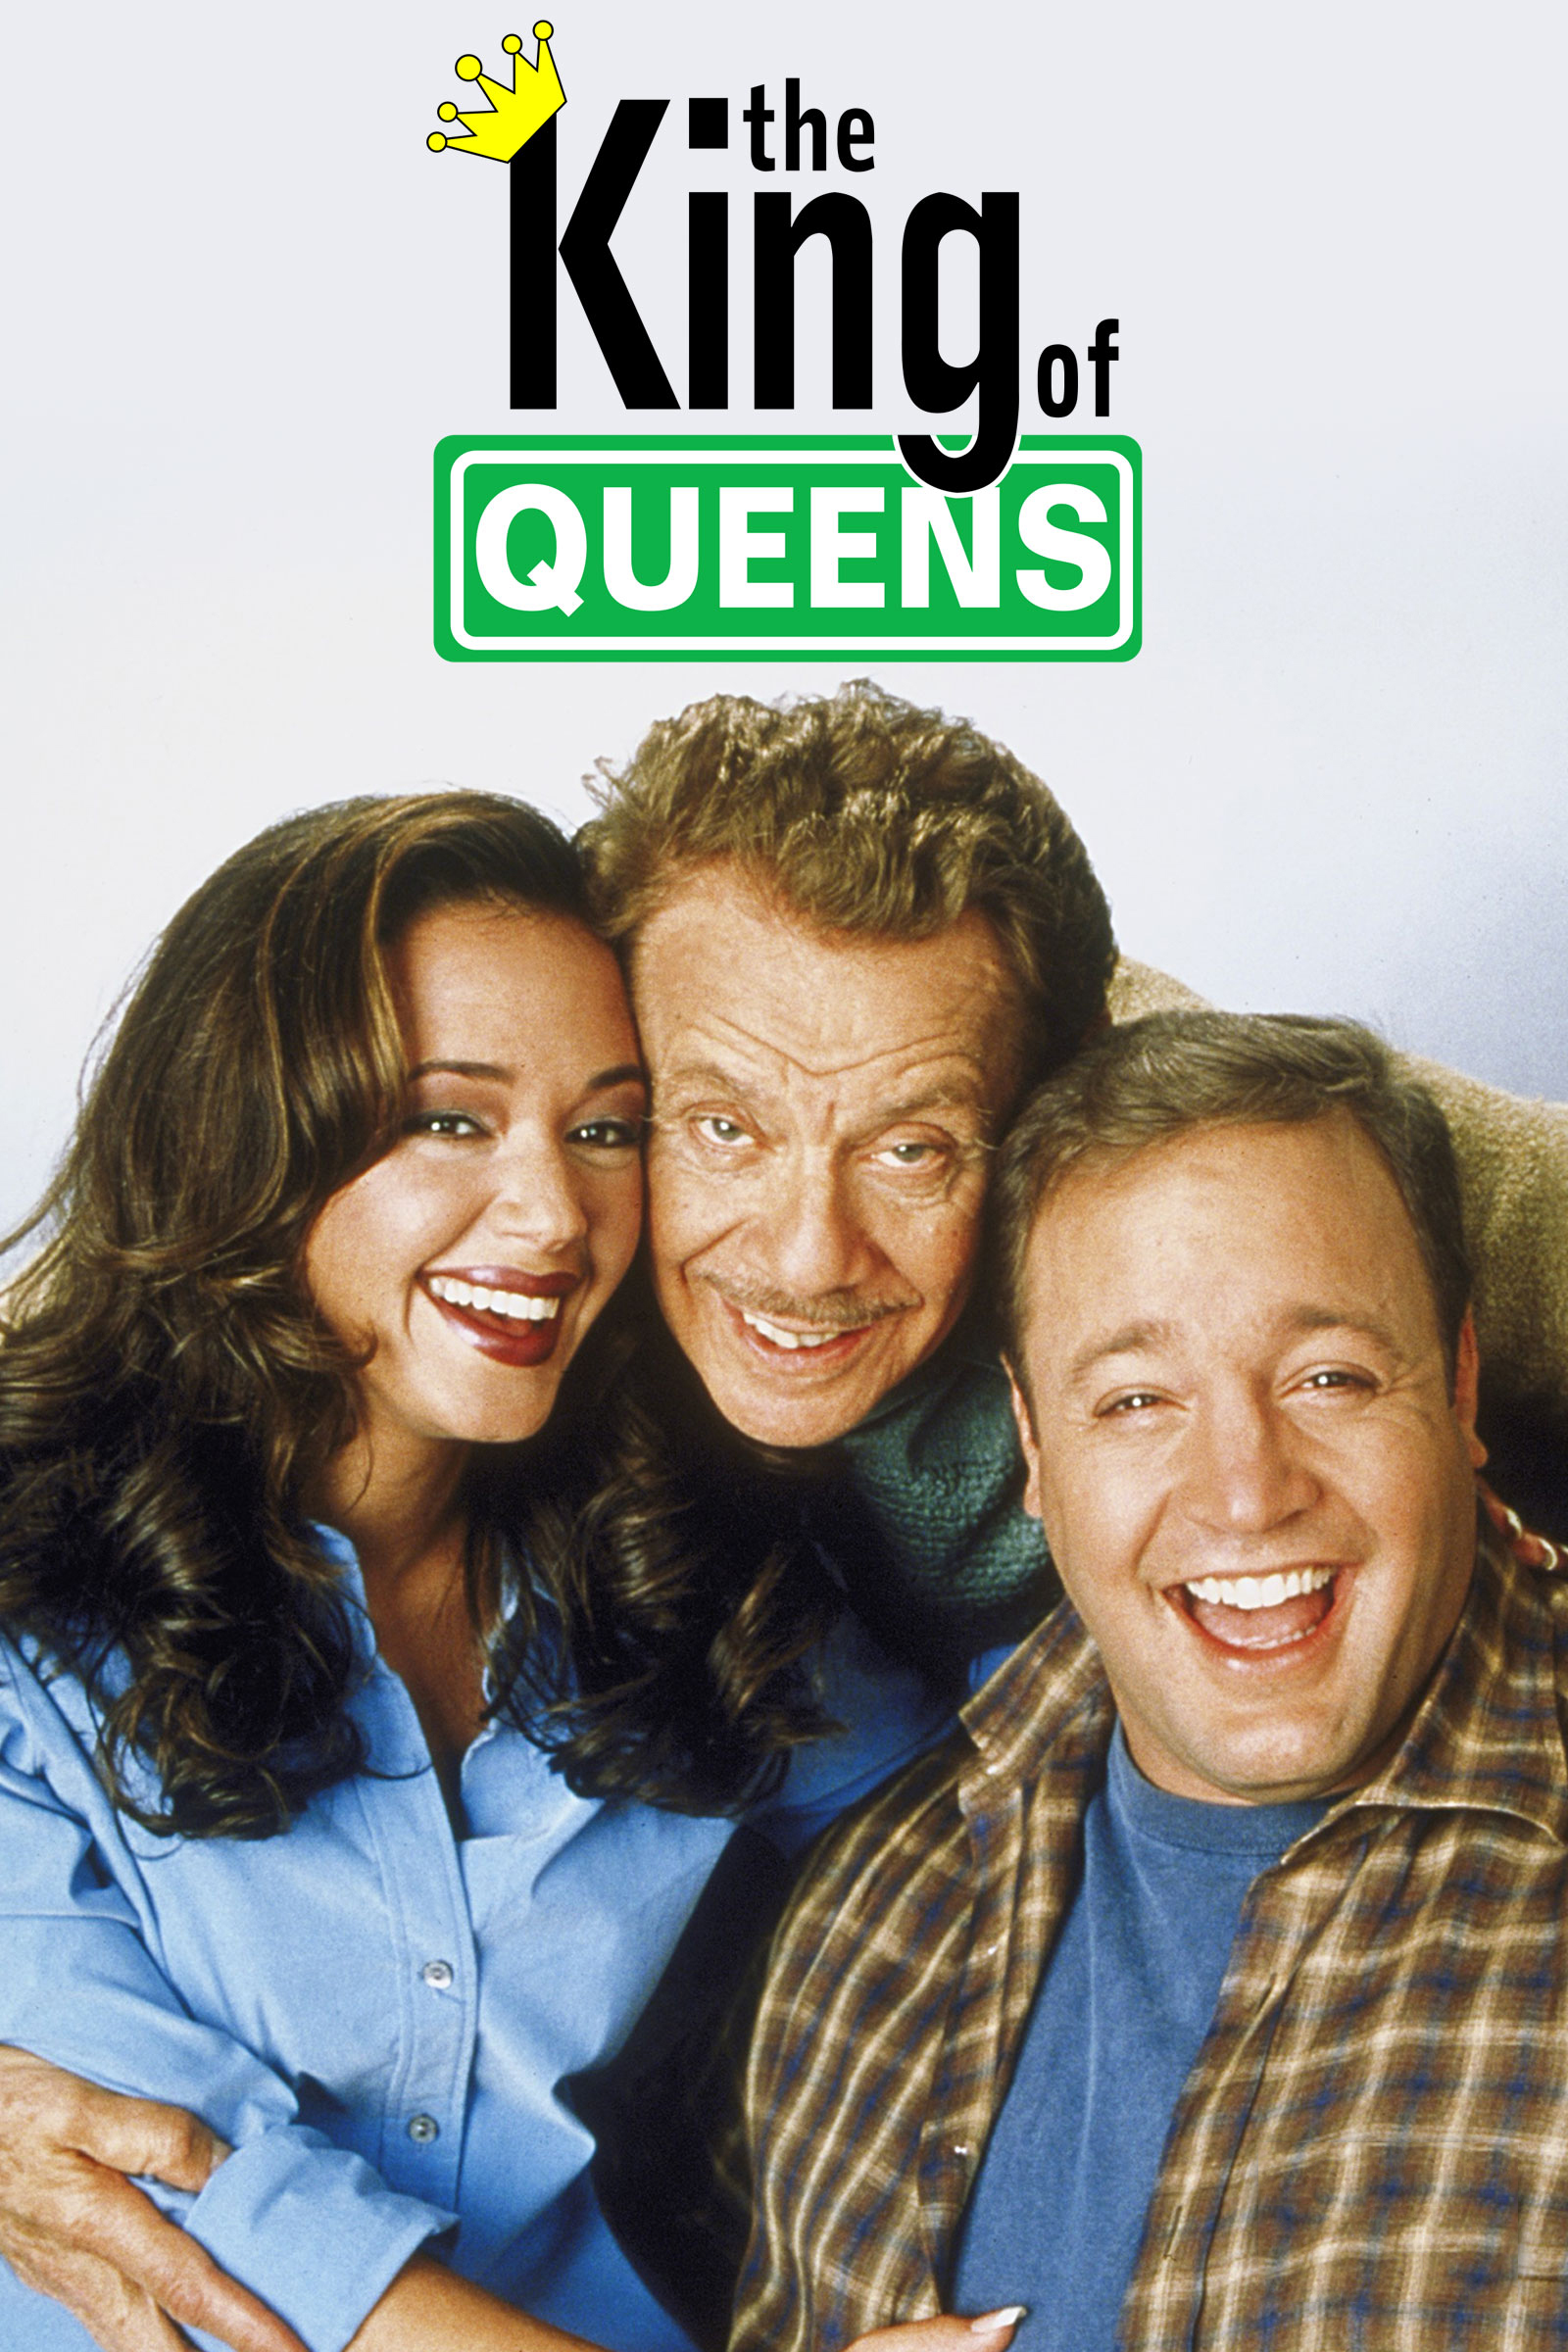 The King of Queens - Where to Watch and Stream - TV Guide